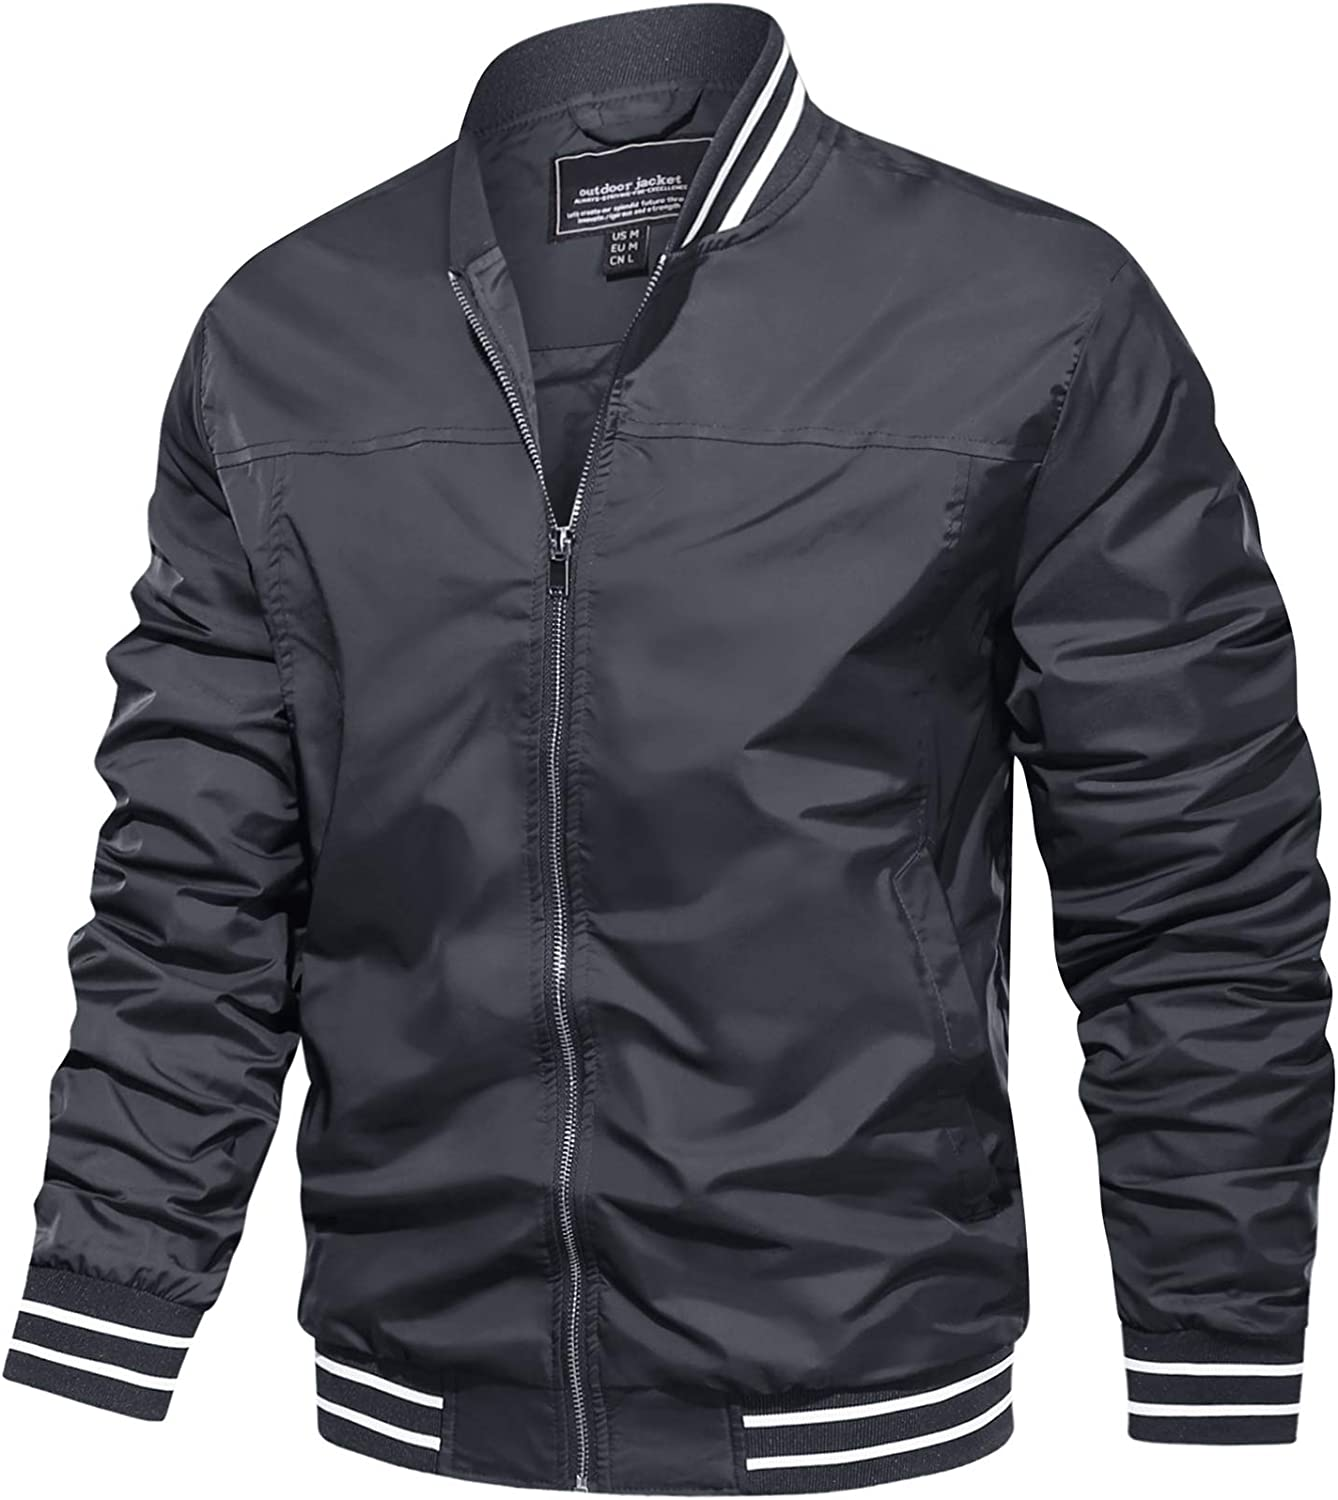 TACVASEN Men's Tampa Mall Bomber Jackets Popular shop is the lowest price challenge Fal Spring Windbreaker Lightweight